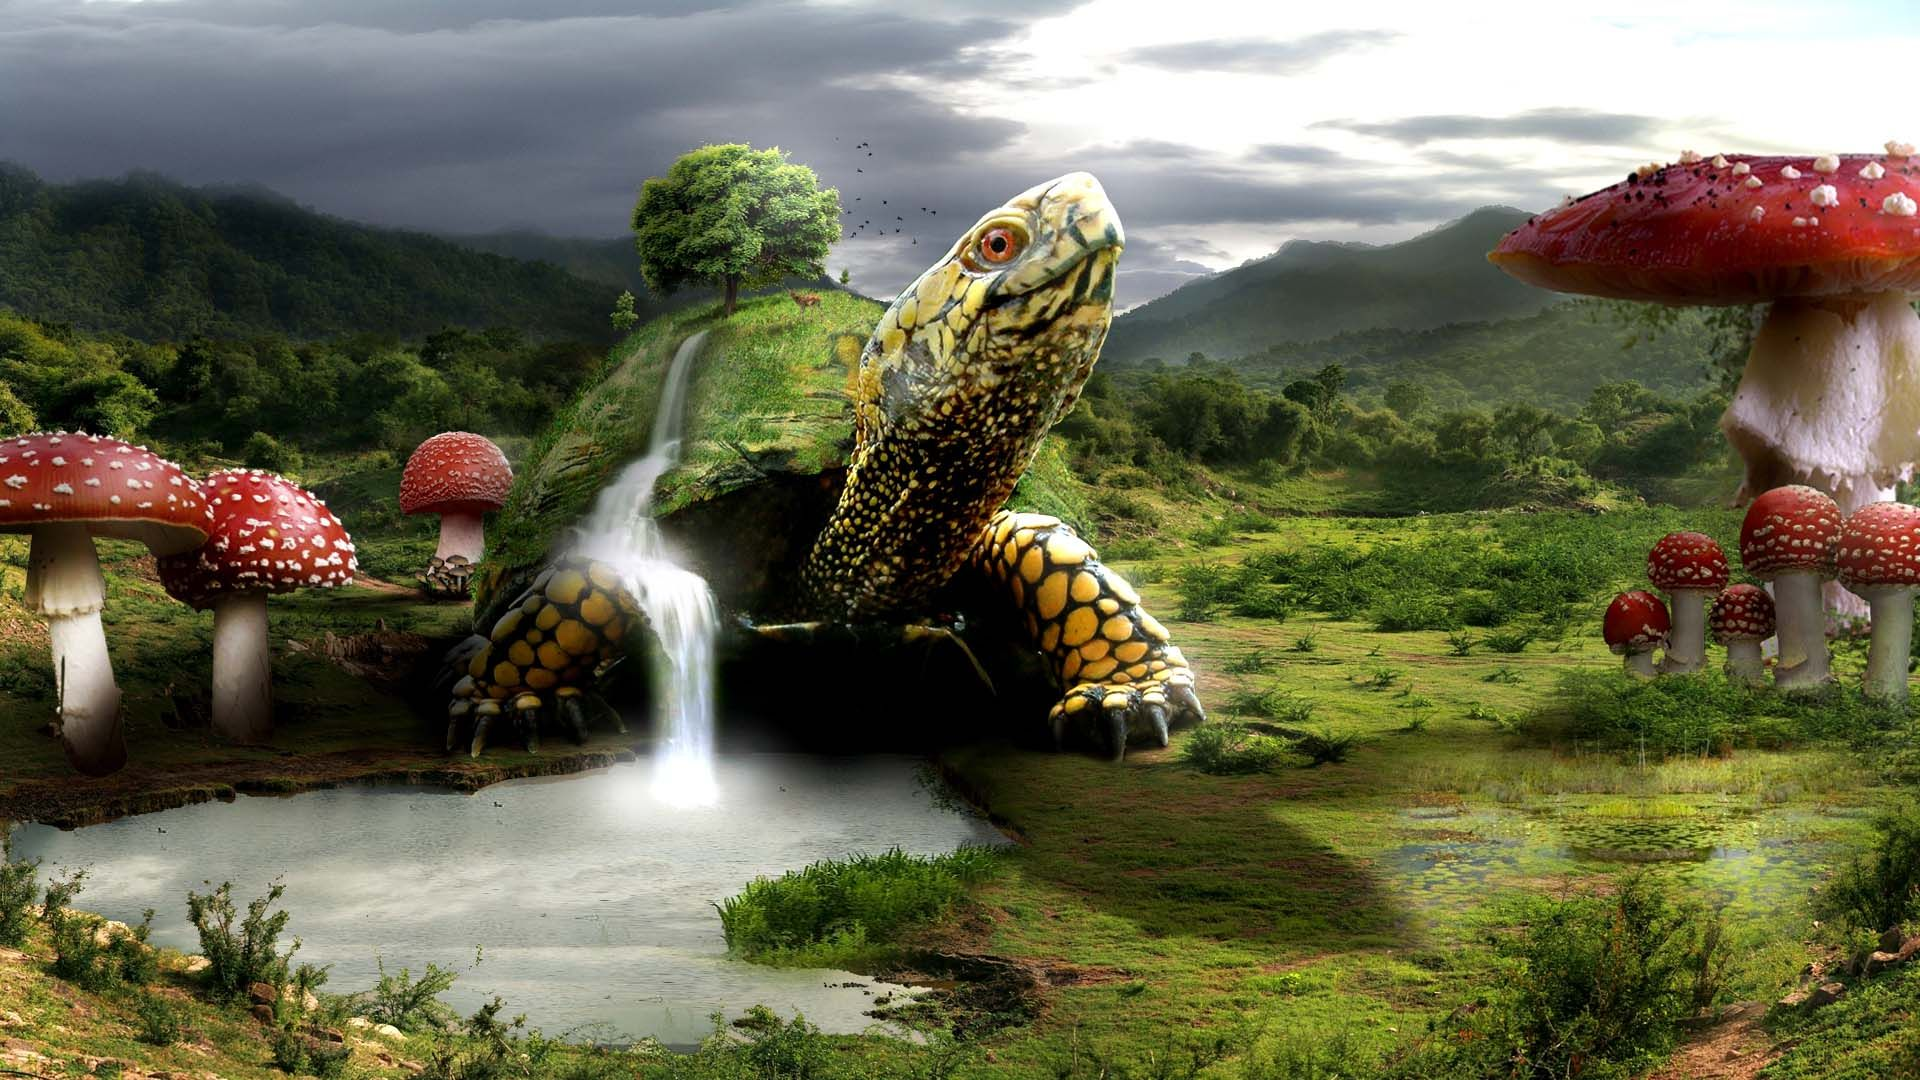 Turtle Wallpapers Desktop Wallpapersfree Desktop Wallpapers